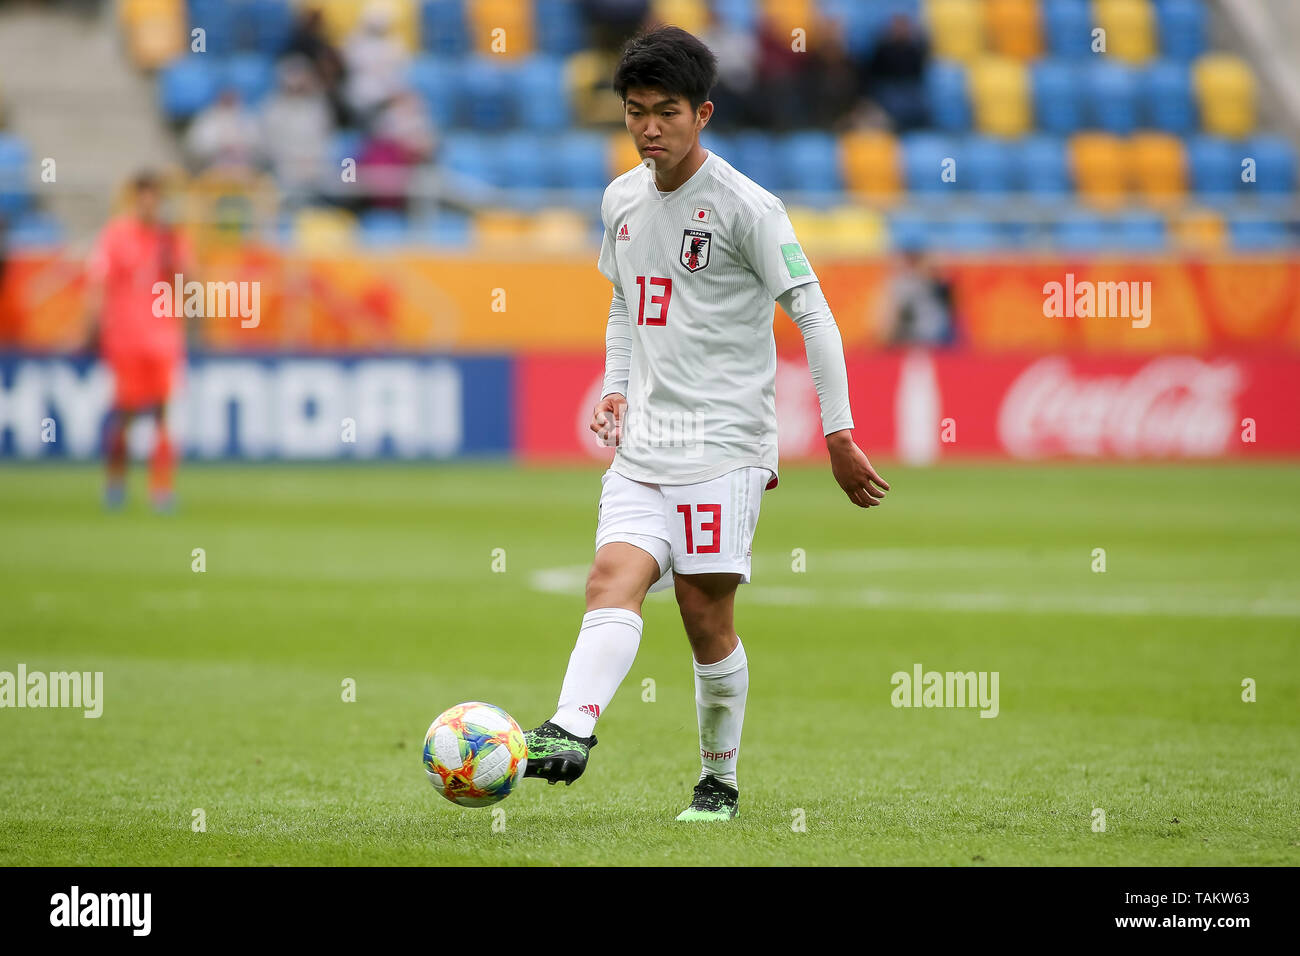 Gdynia Stadium, Gdynia, Poland - 26th May, 2019: Taisei Miyashiro from Japan seen in action during FIFA U-20 World Cup match between Mexico and Japan (GROUP B) in Gdynia. (Final score; Mexico 0:3 Japan) - Stock Image